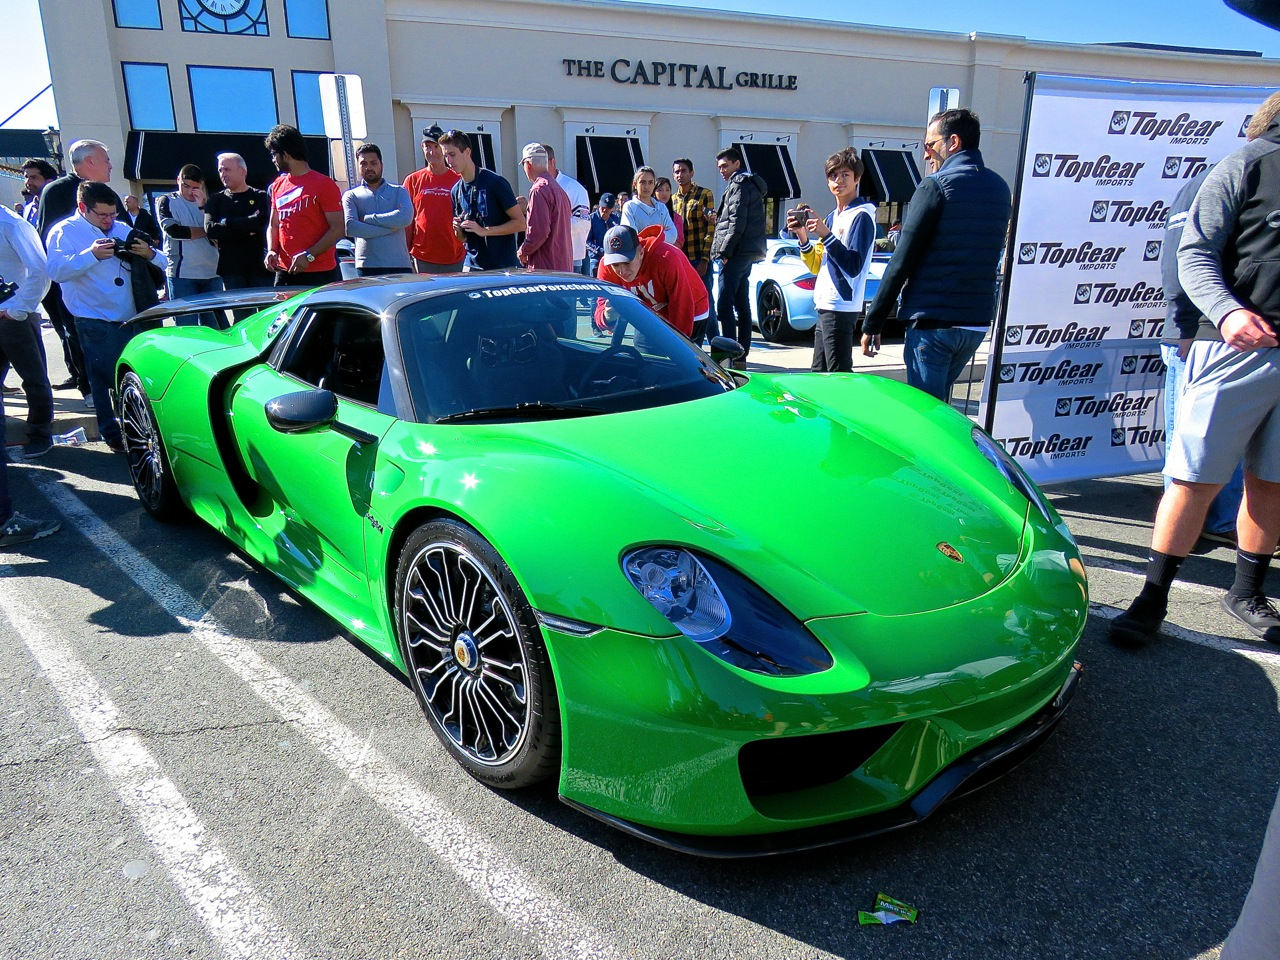 Green Porsche 918 Cars and Caffe 1